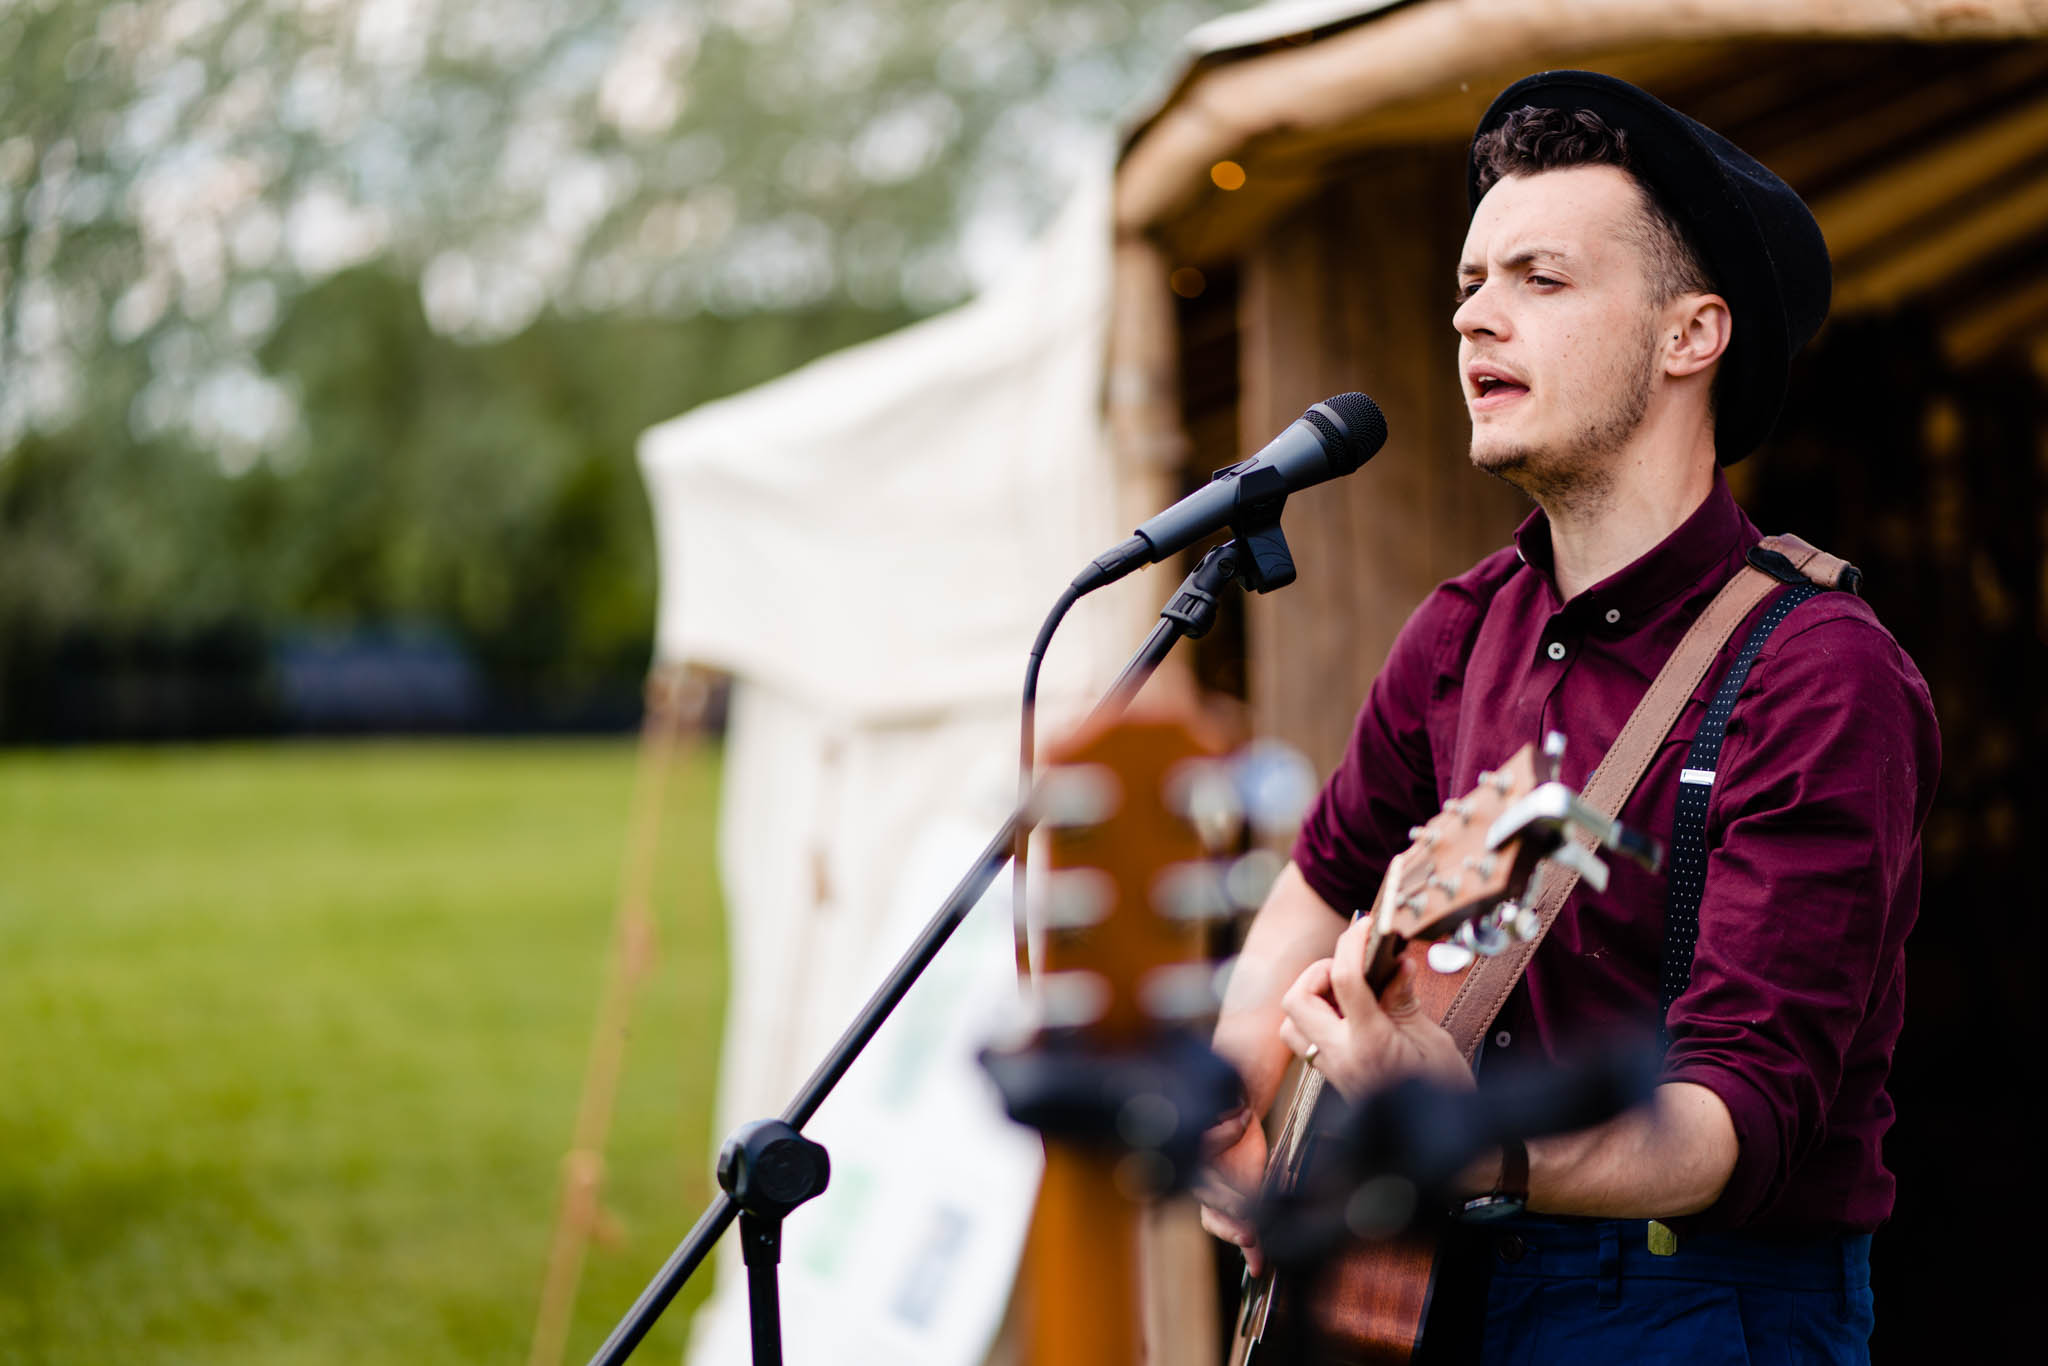 vicki clayson photography - singer captured at festival wedding in front of yurt with his guitar